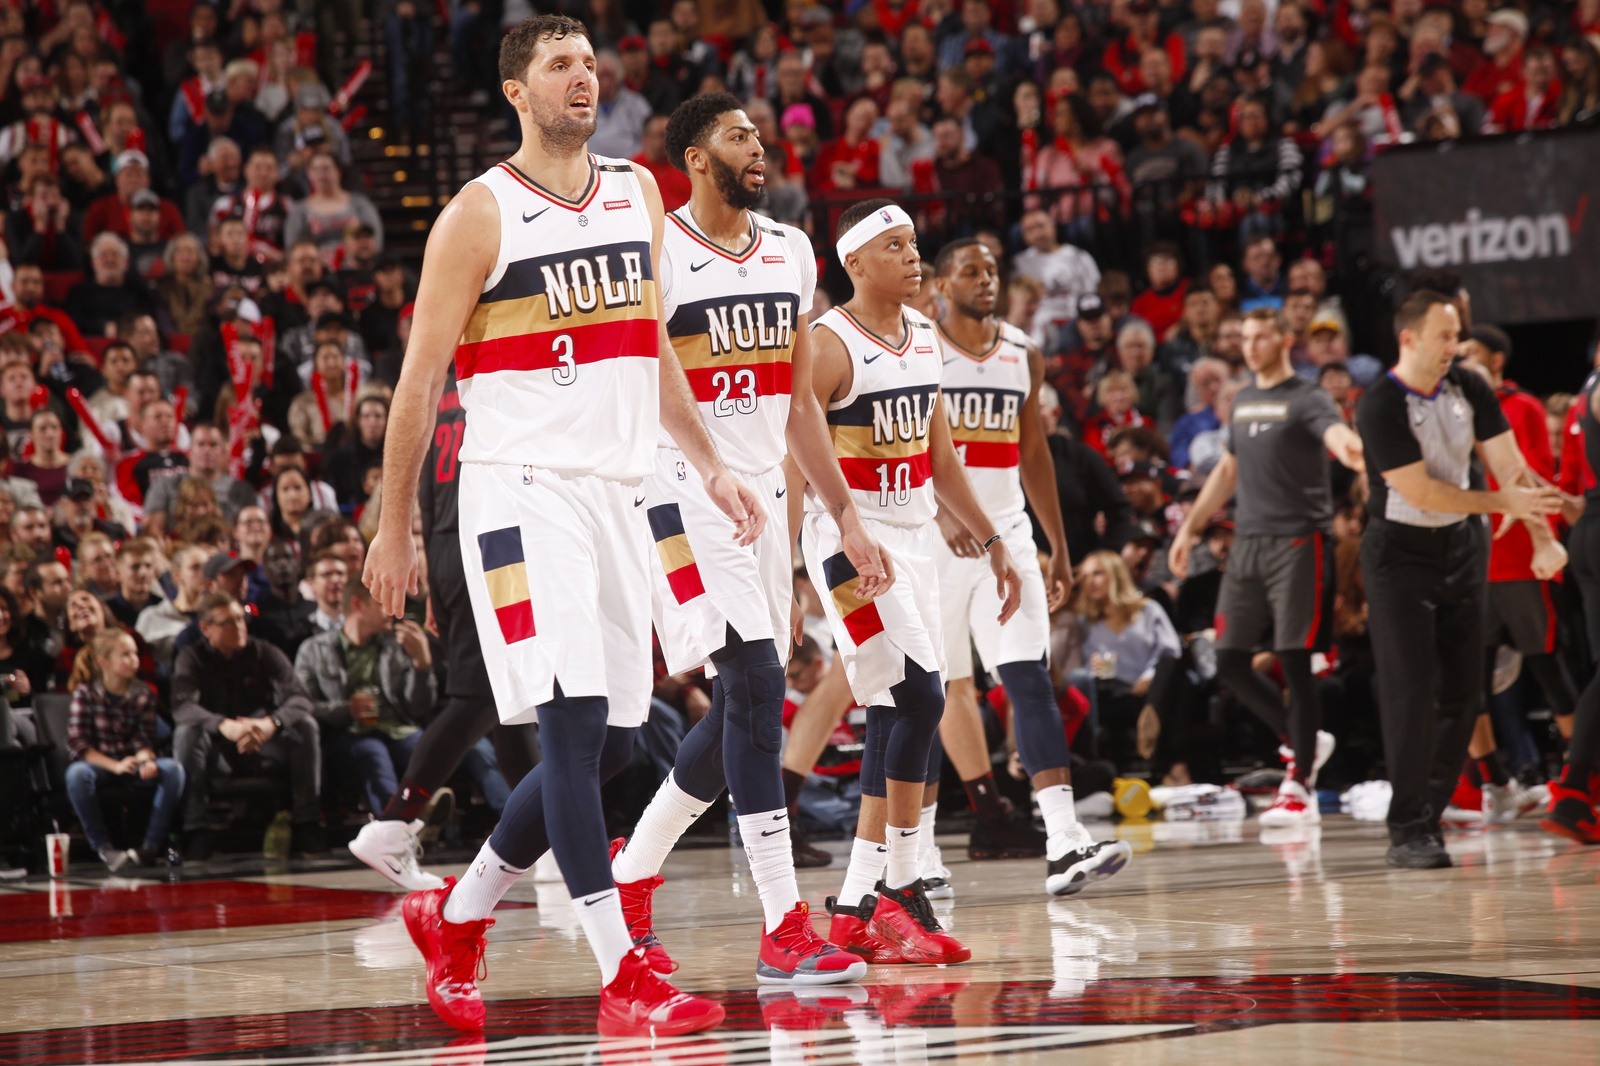 The New Orleans Pelicans all walk onto the court during the game against the Portland Trail Blazers on January 18, 2019 at the Moda Center Arena in Portland, Oregon.